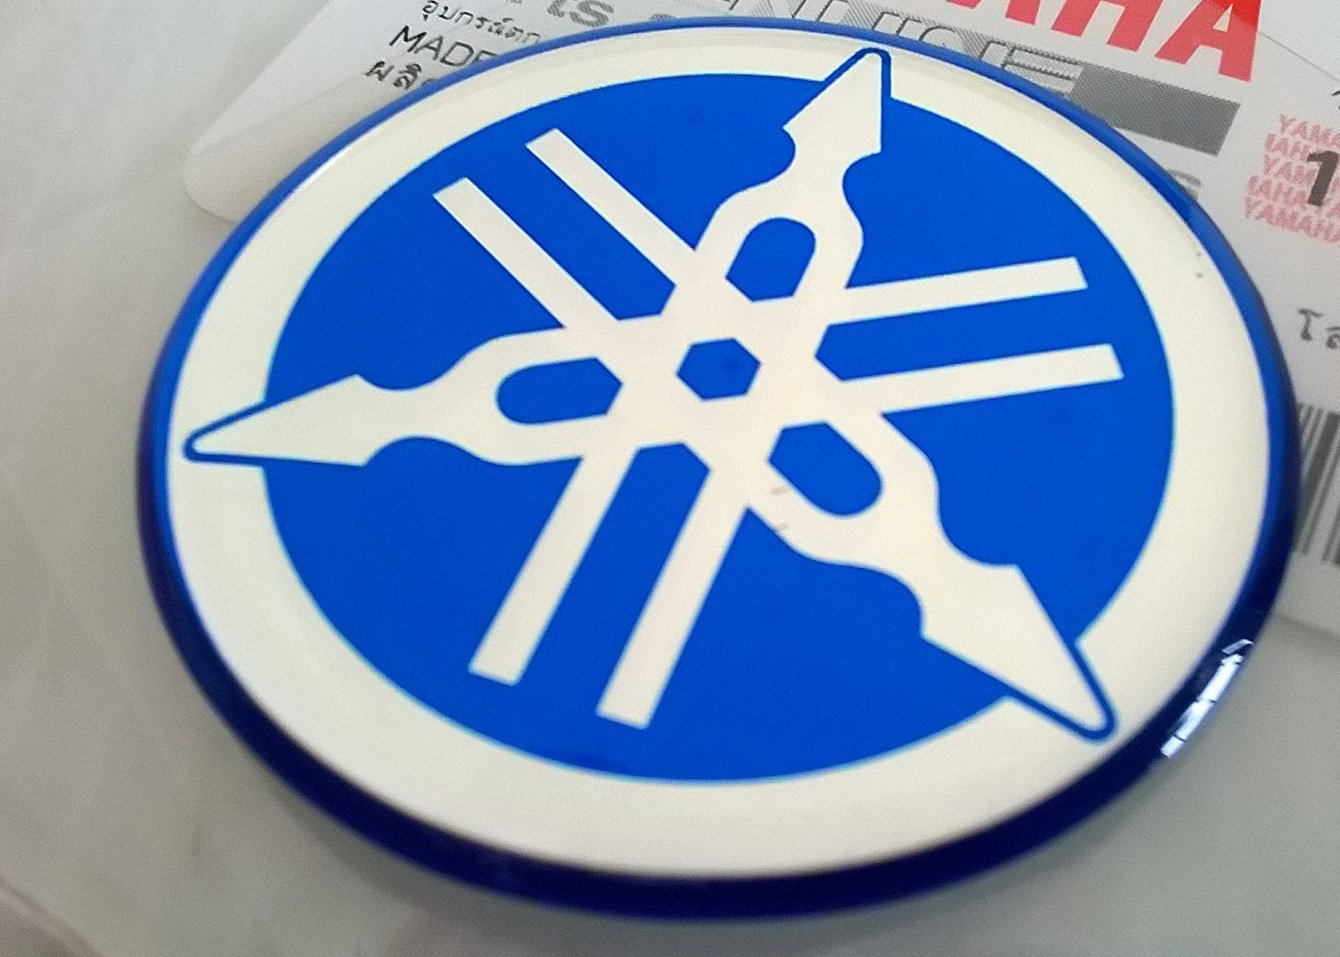 YAMAHA TUNING Emblem Sticker Logo / BLUE - CHROME /More size to select/ BODY GEL Resin Self-adhesive Moto / Jet Ski / ATV / Snowmobile (40mm.) Car Bike decoration